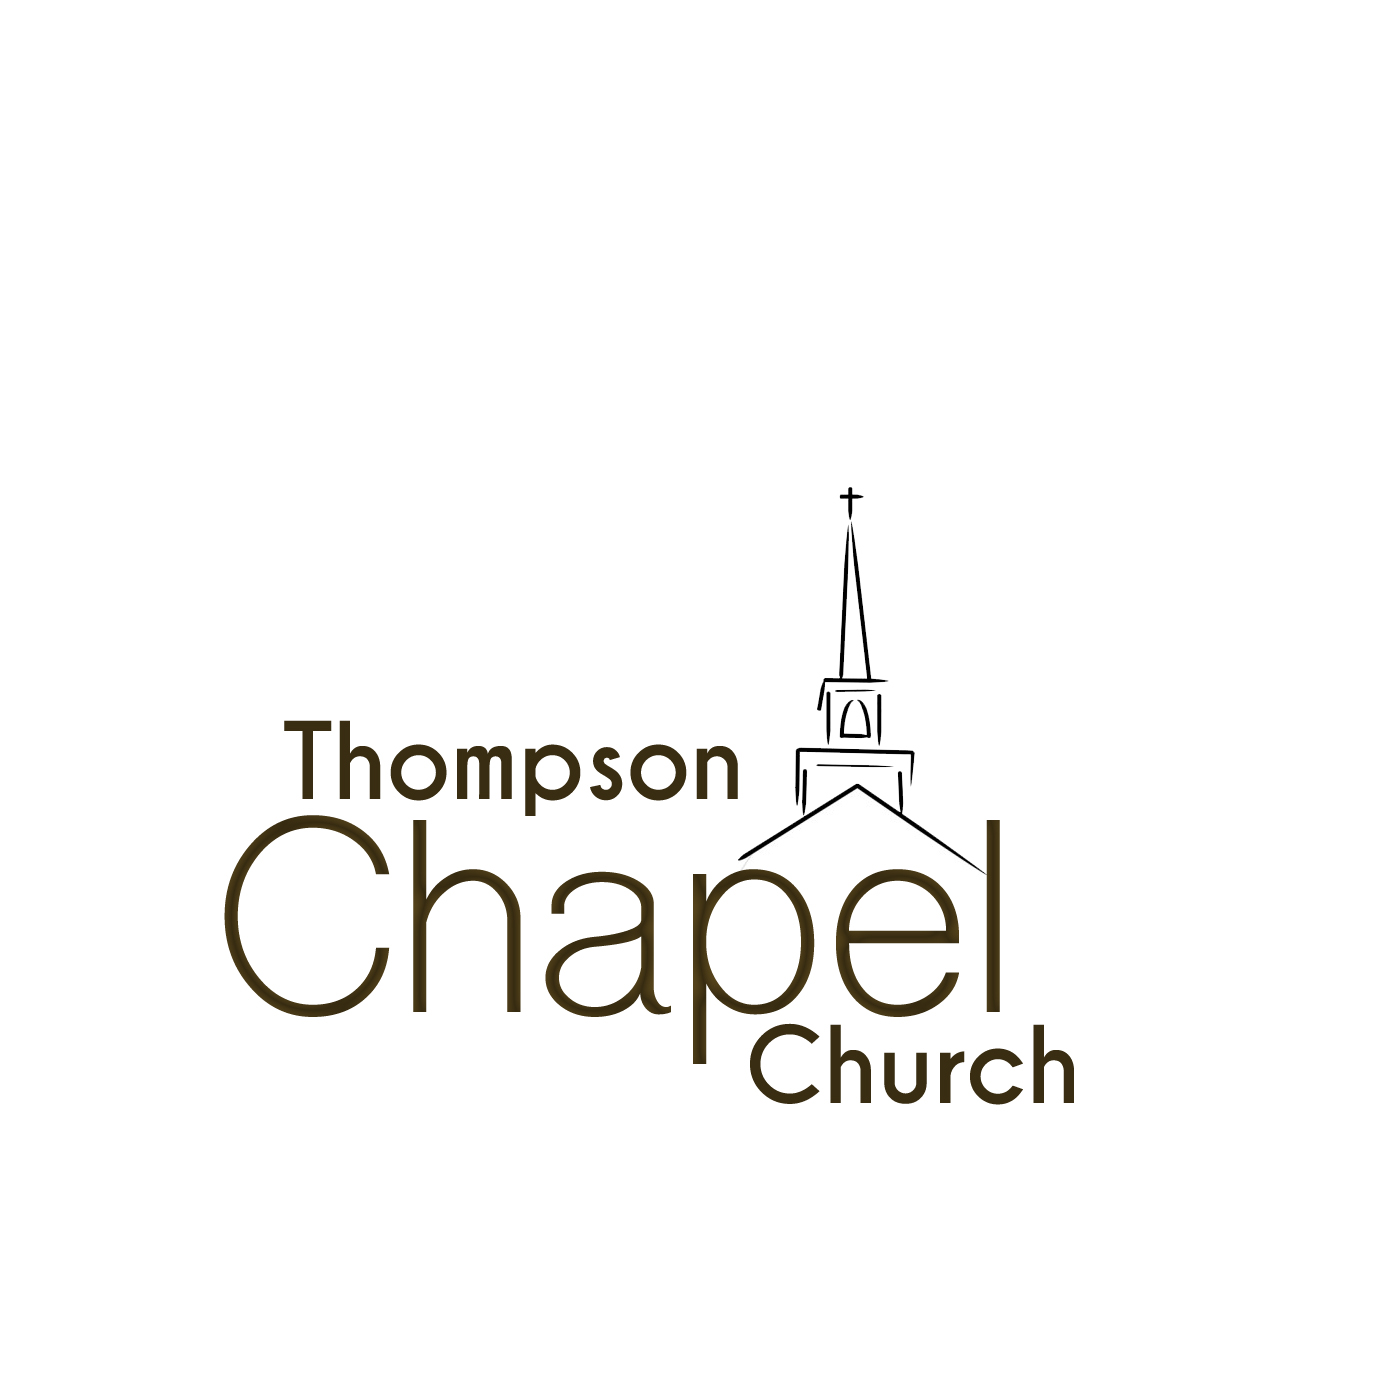 About Our Church